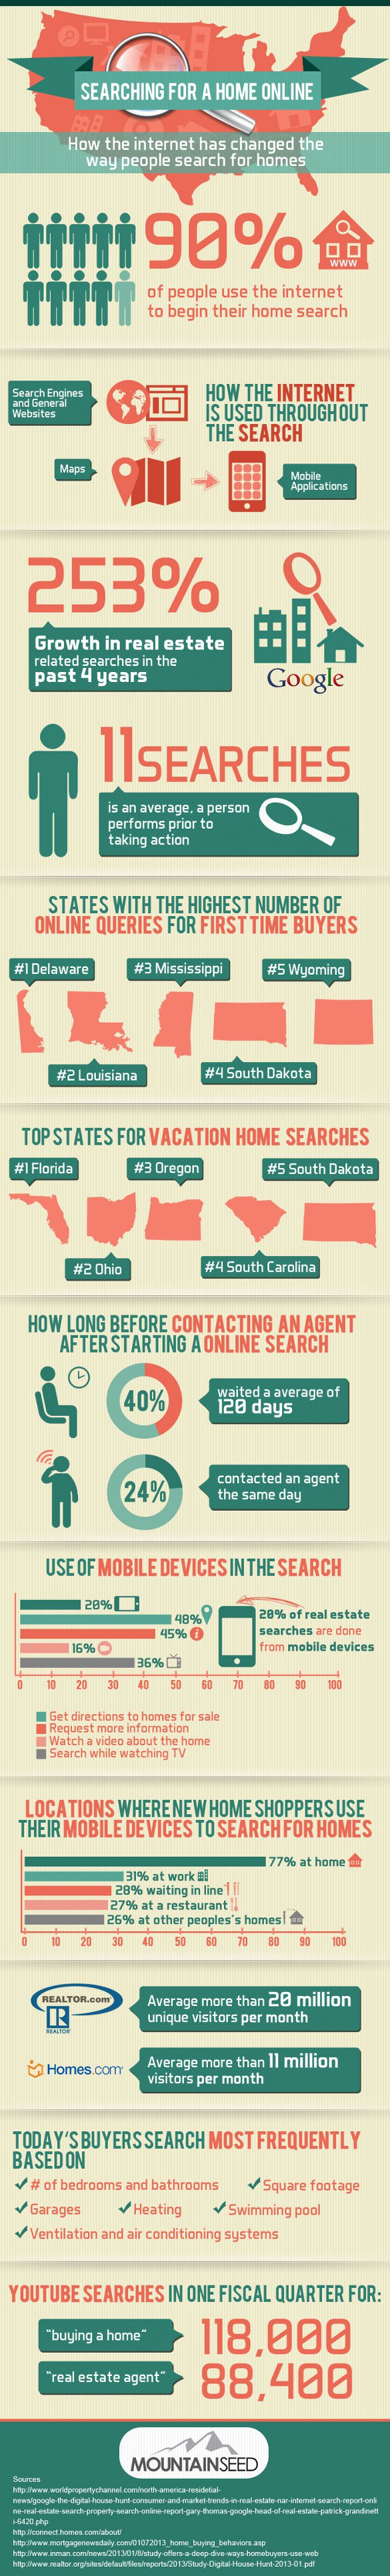 Home searches via visual.ly